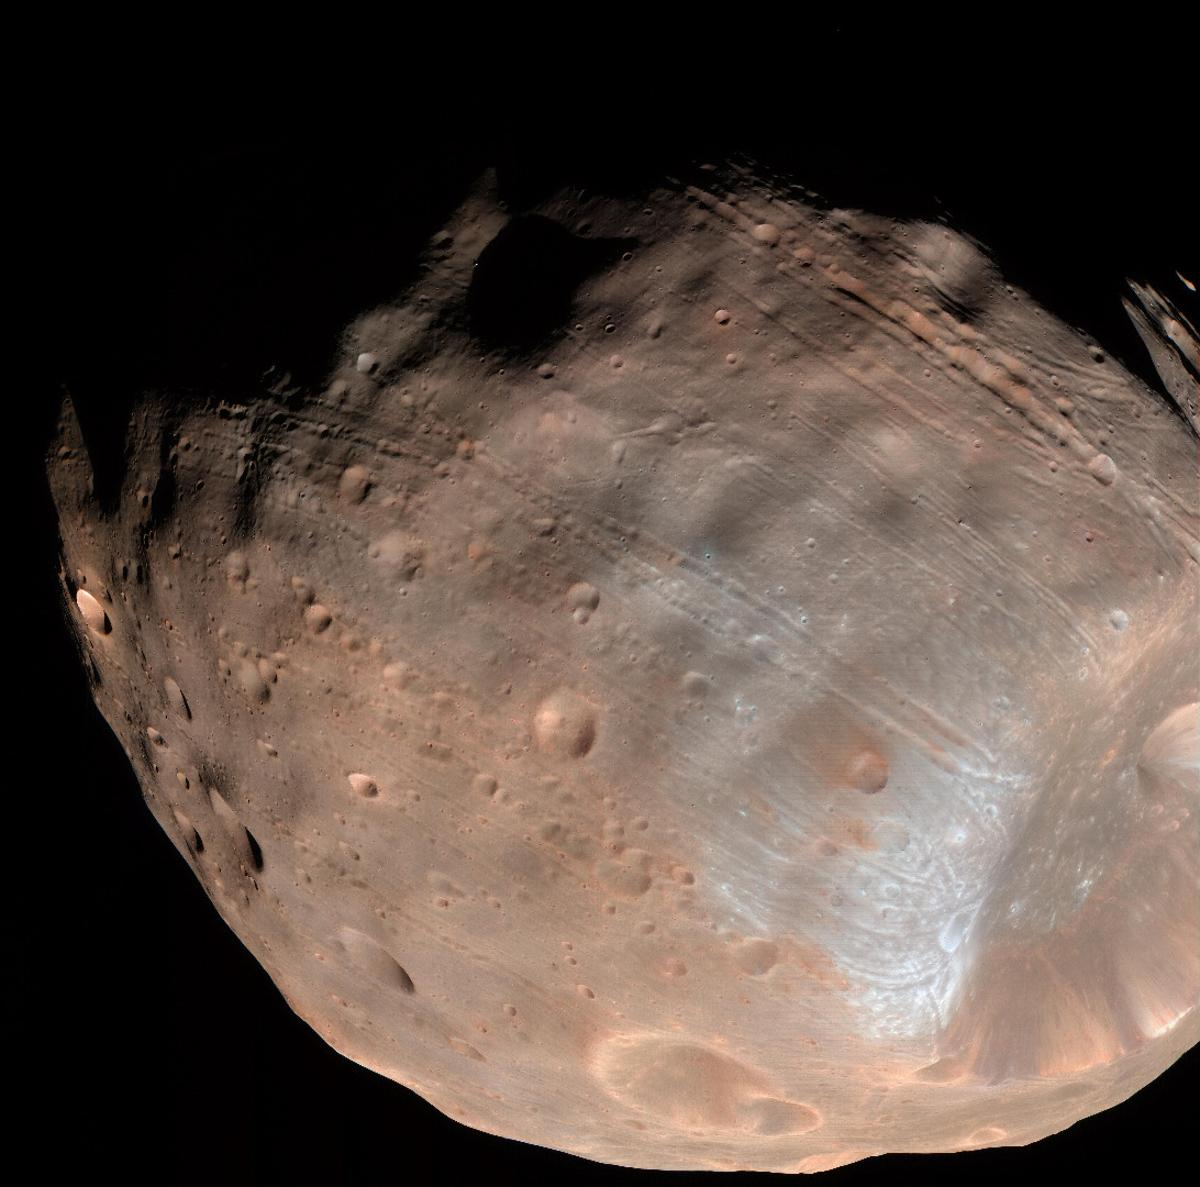 The grooves on the surface of Mars' moon Phobos are caused by tidal forces with the planet that are slowly leading to the moon's destruction